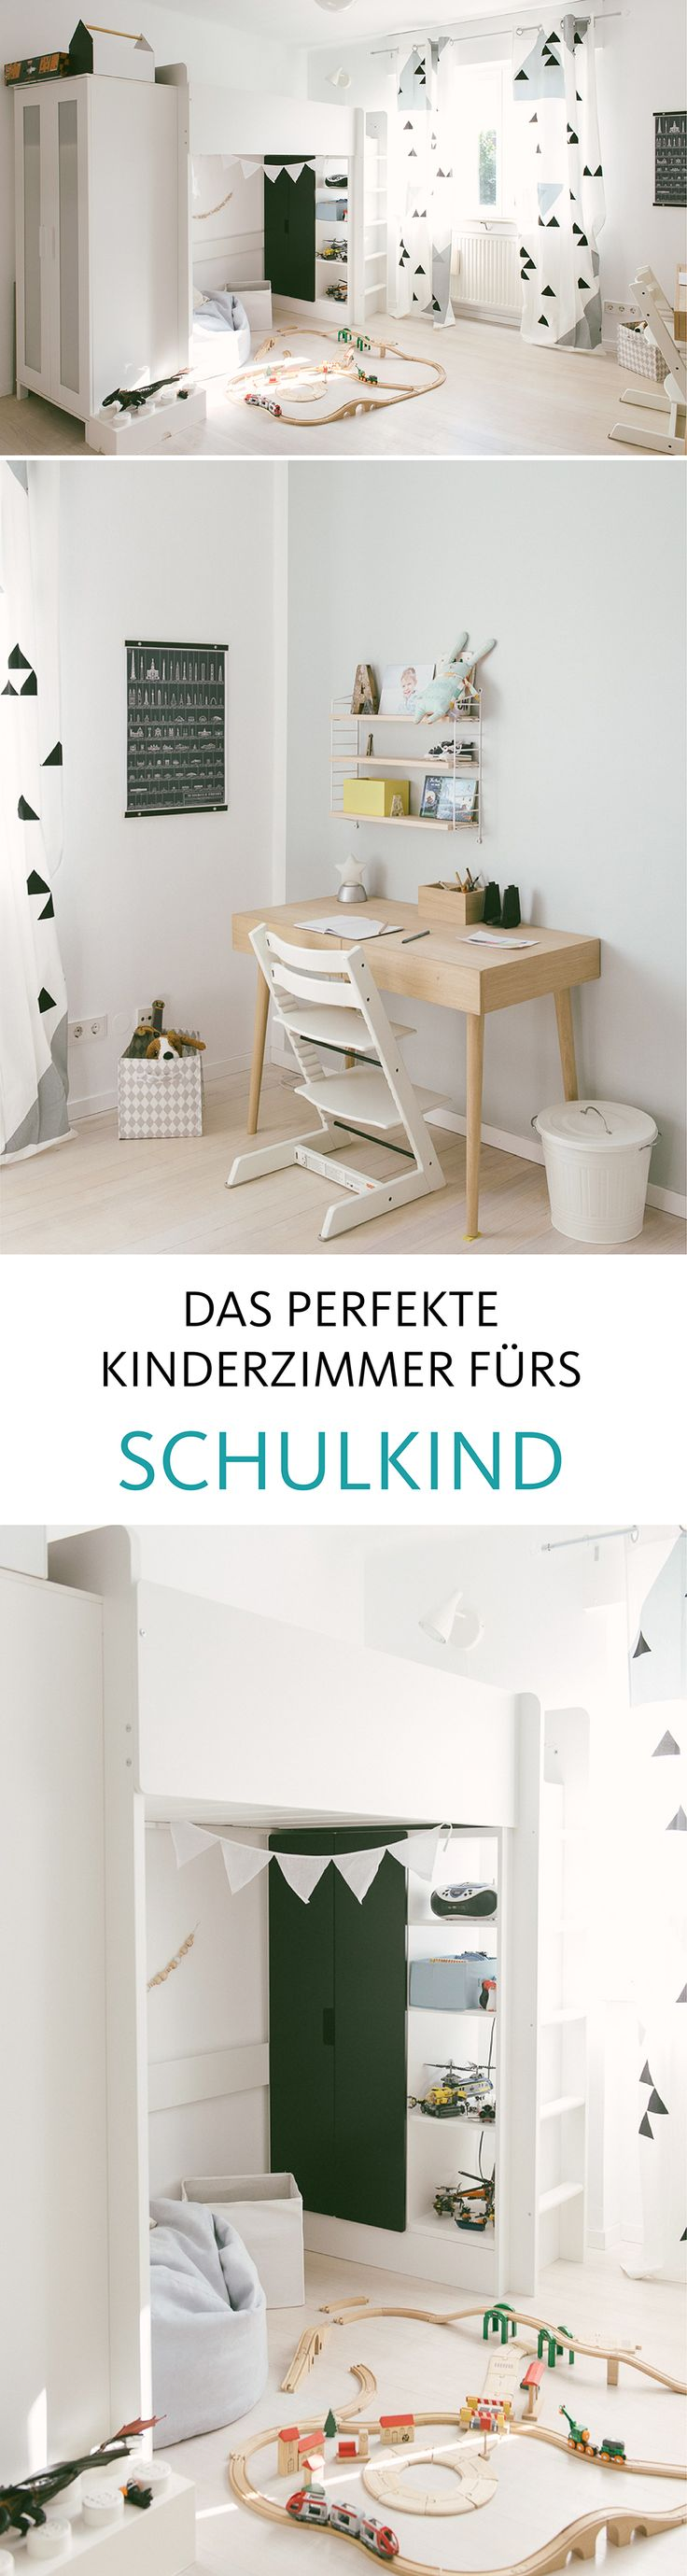 ber ideen zu teenager zimmer jungs auf pinterest jungszimmer kinderzimmer jungen. Black Bedroom Furniture Sets. Home Design Ideas